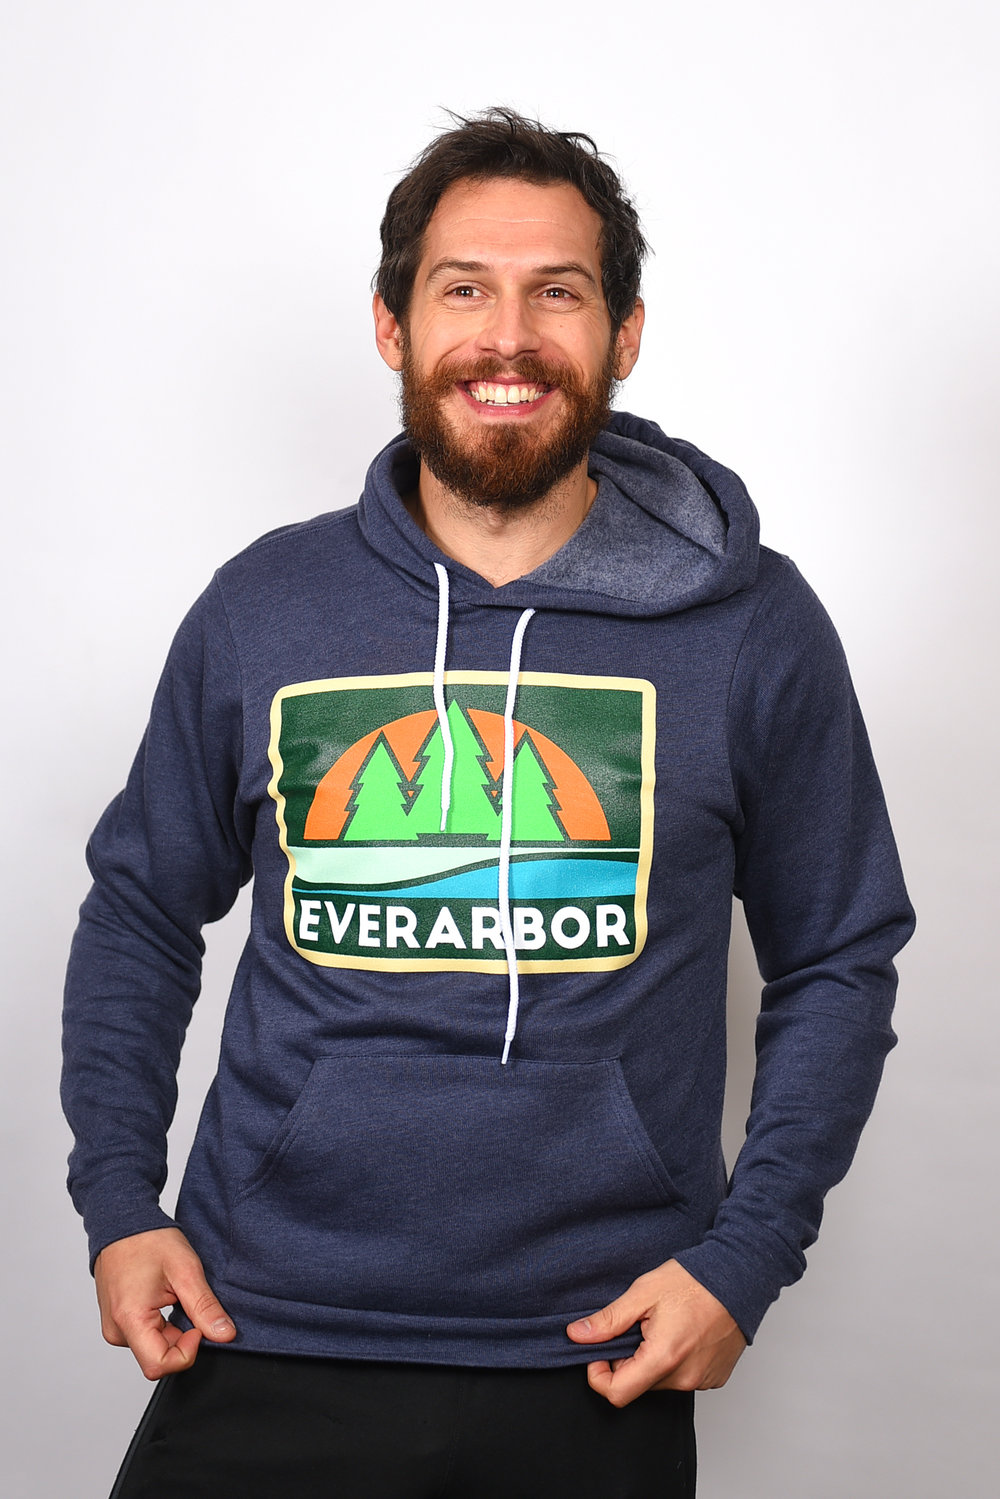 EVERARBOR_BRANDING_2019_KB0217.jpg